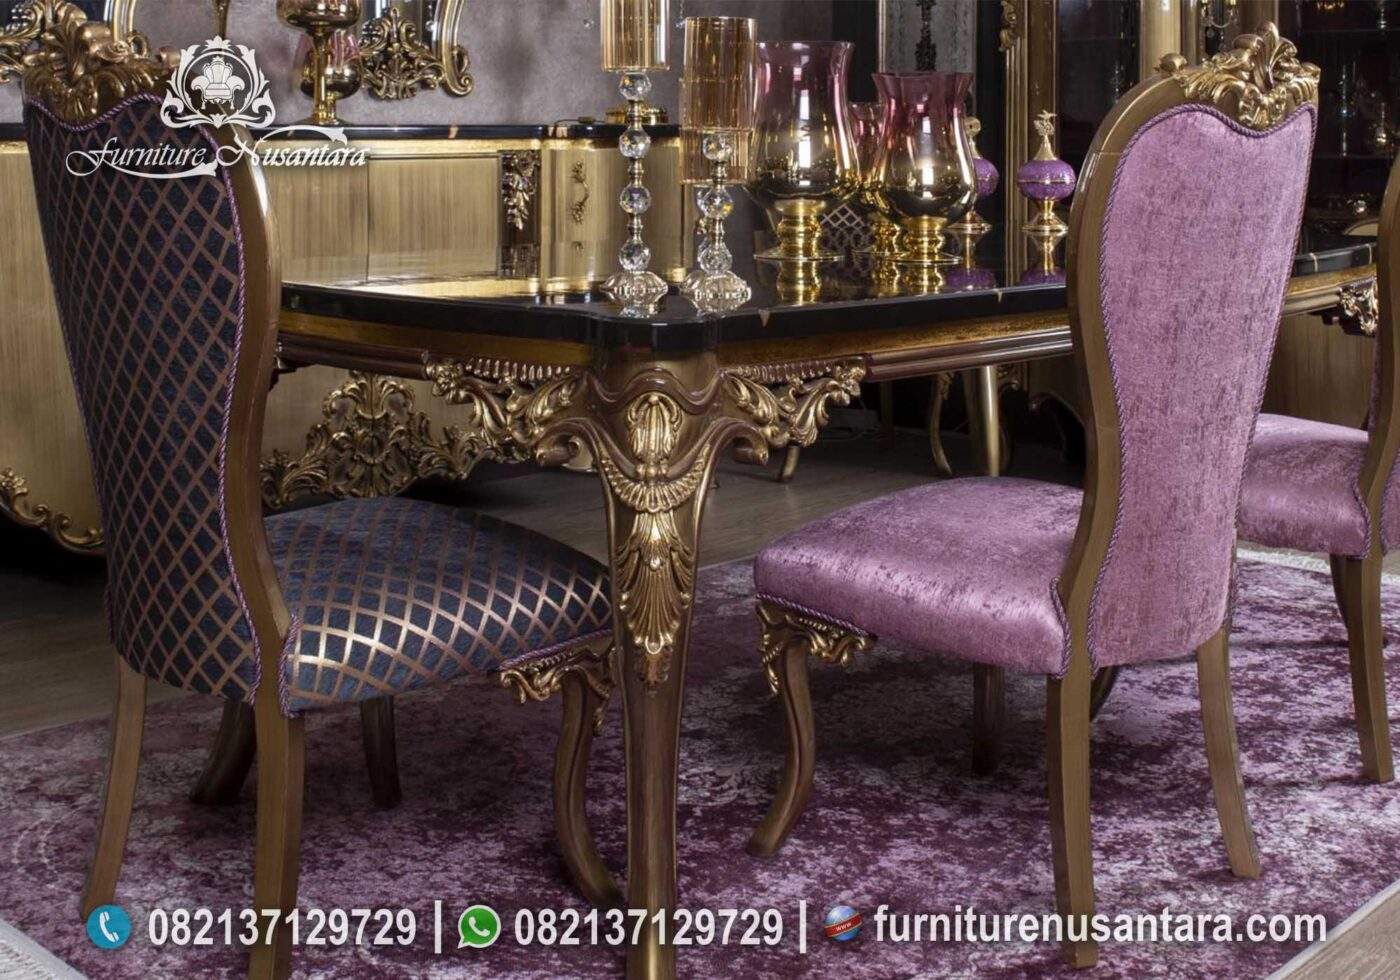 Meja Makan Nuansa Ungu Top Marmer MM-20, Furniture Nusantara